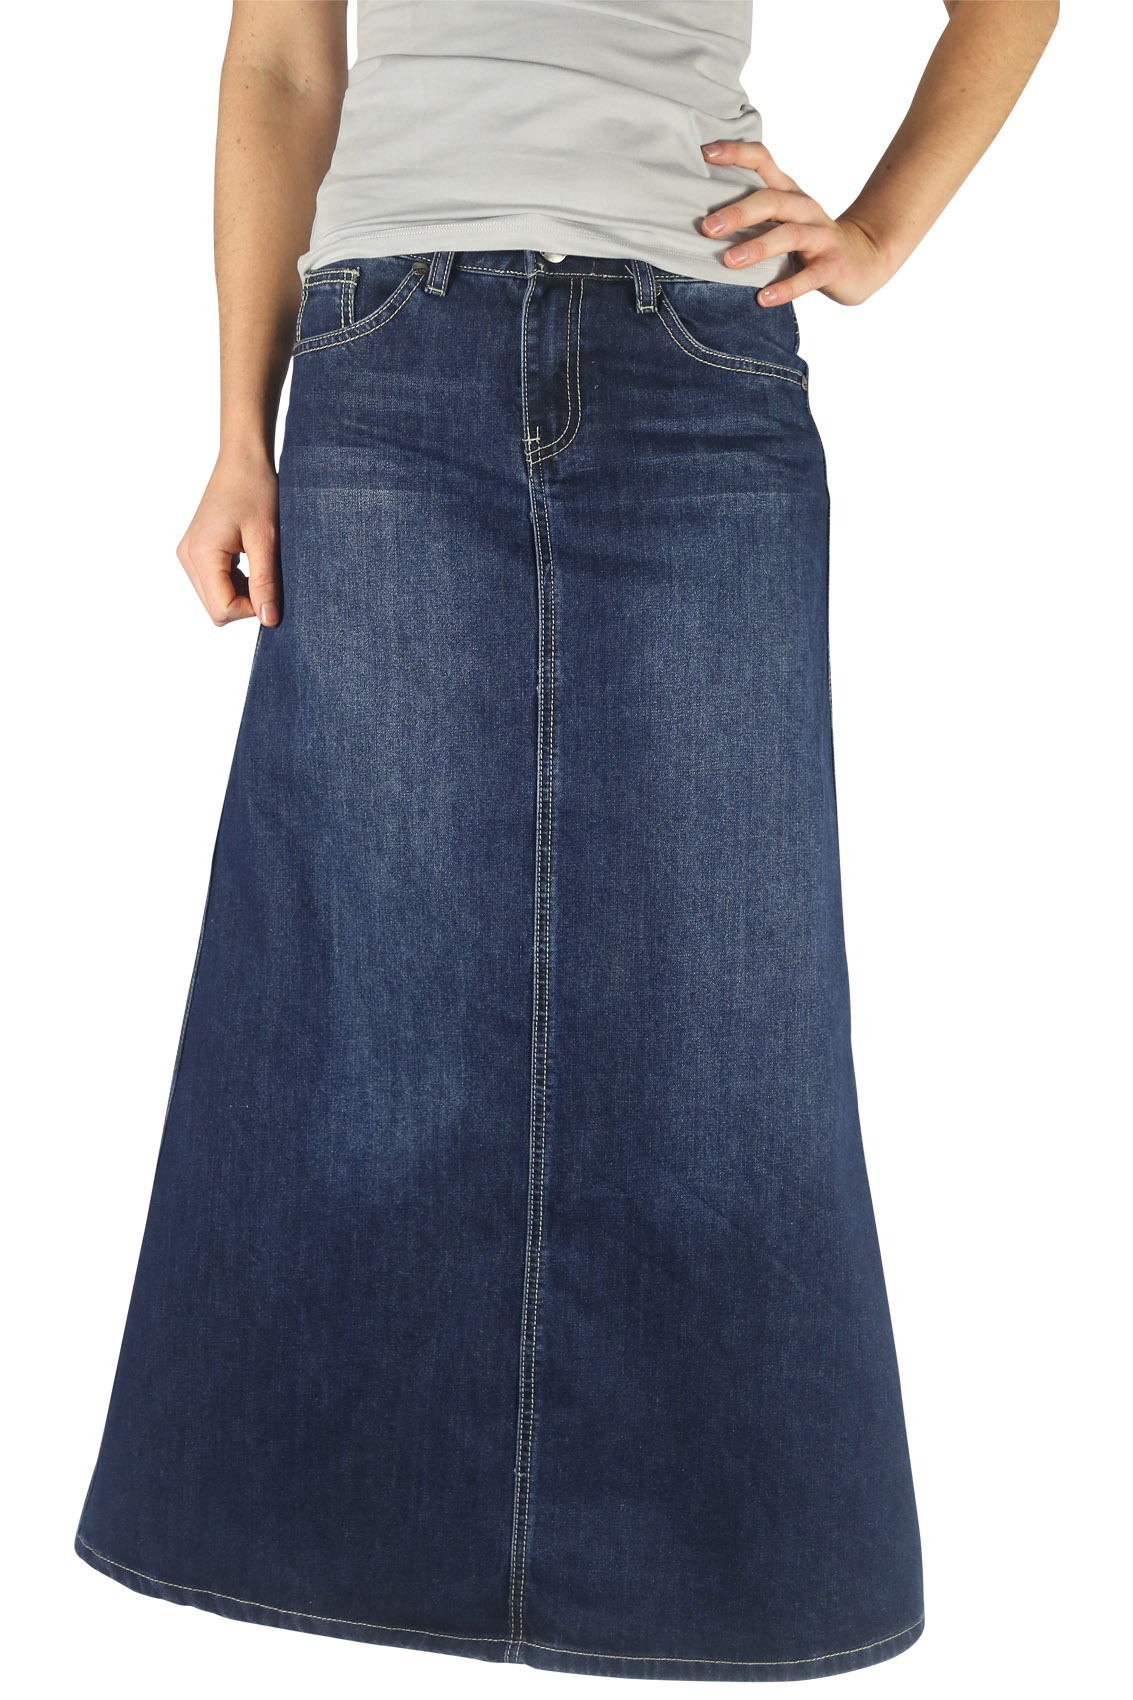 Tiered Denim Modest Skirt | Long Skirt Sizes 8-18 |Western Long Denim Skirts Modest